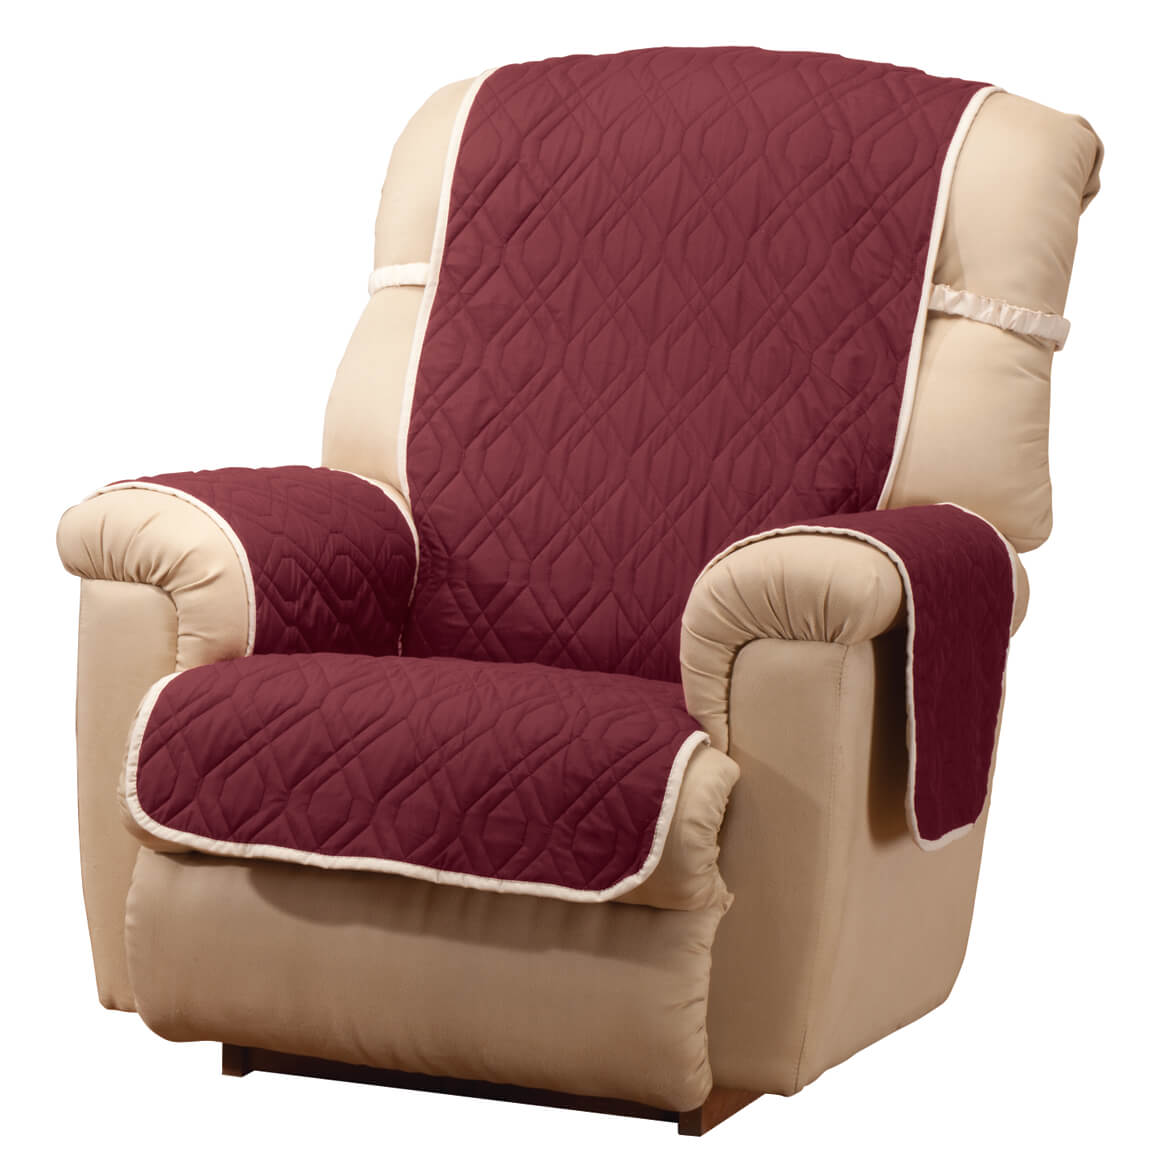 waterproof chair covers for recliners cowhide office uk deluxe reversible recliner cover miles kimball